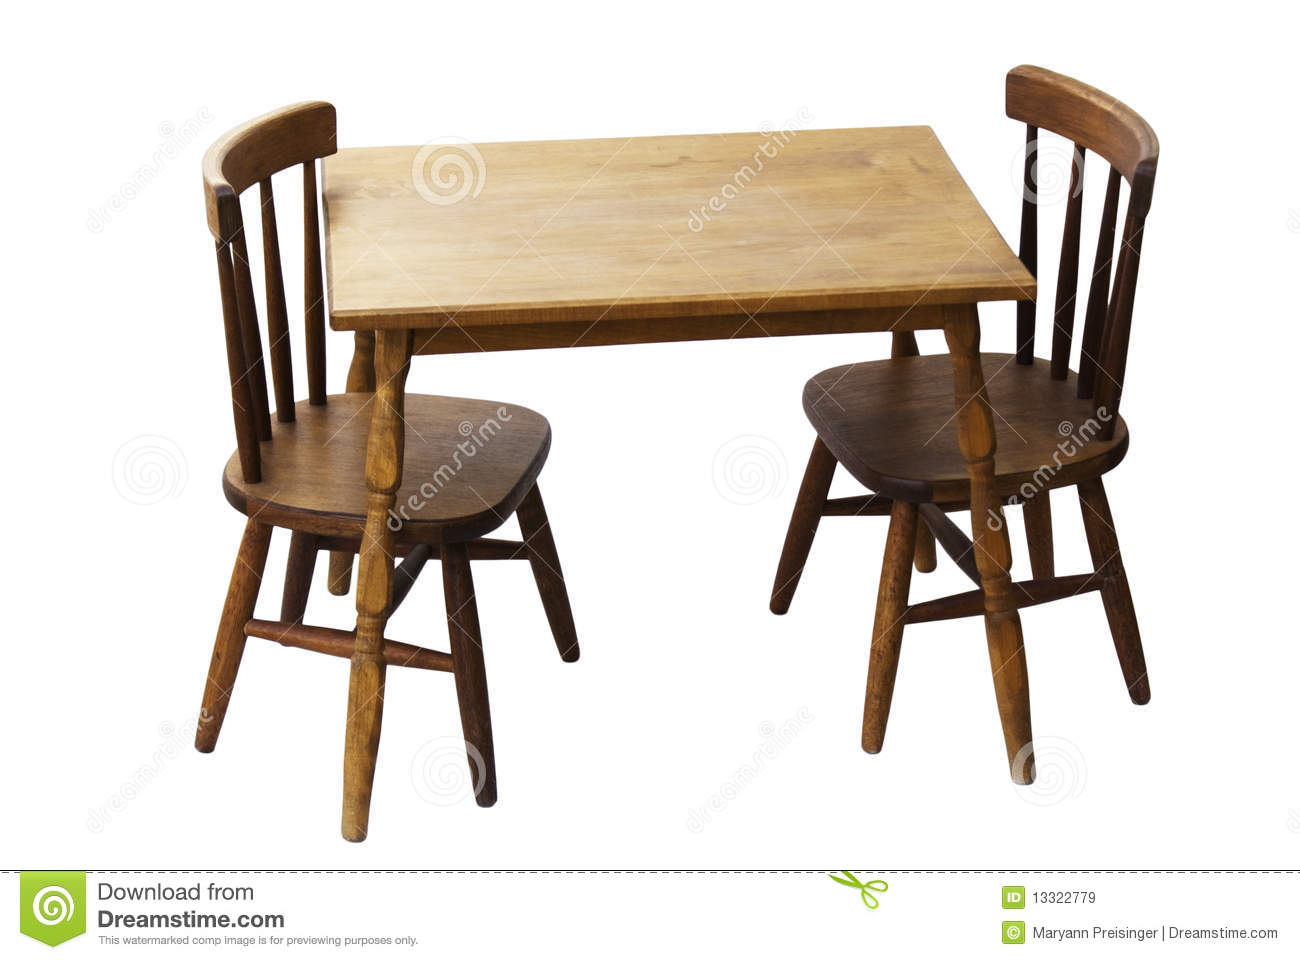 Old Wooden Table ~ Children s child wood table and chairs isolated royalty